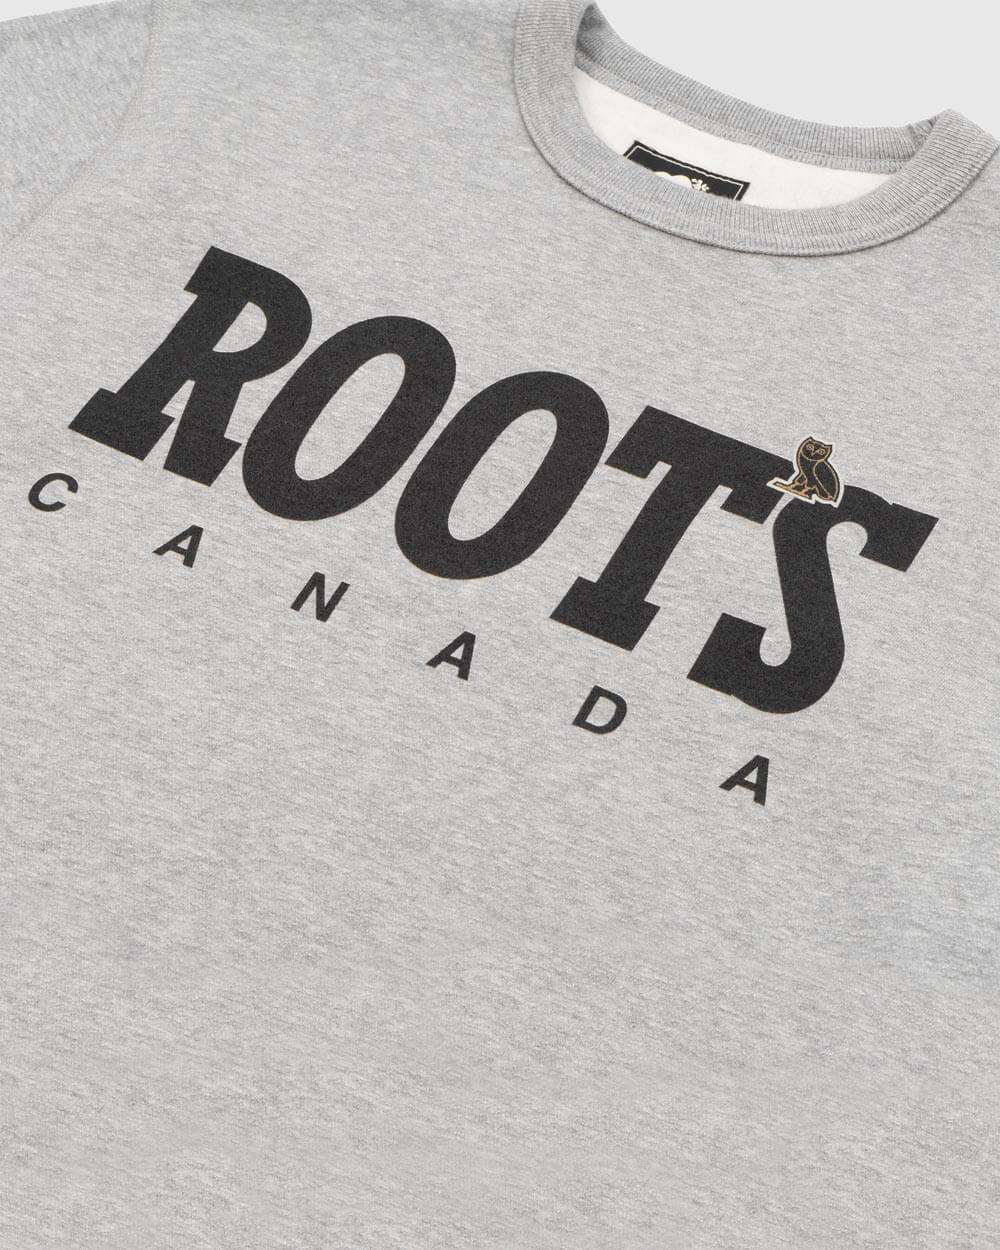 OVO x ROOTS CREW - HEATHER GREY